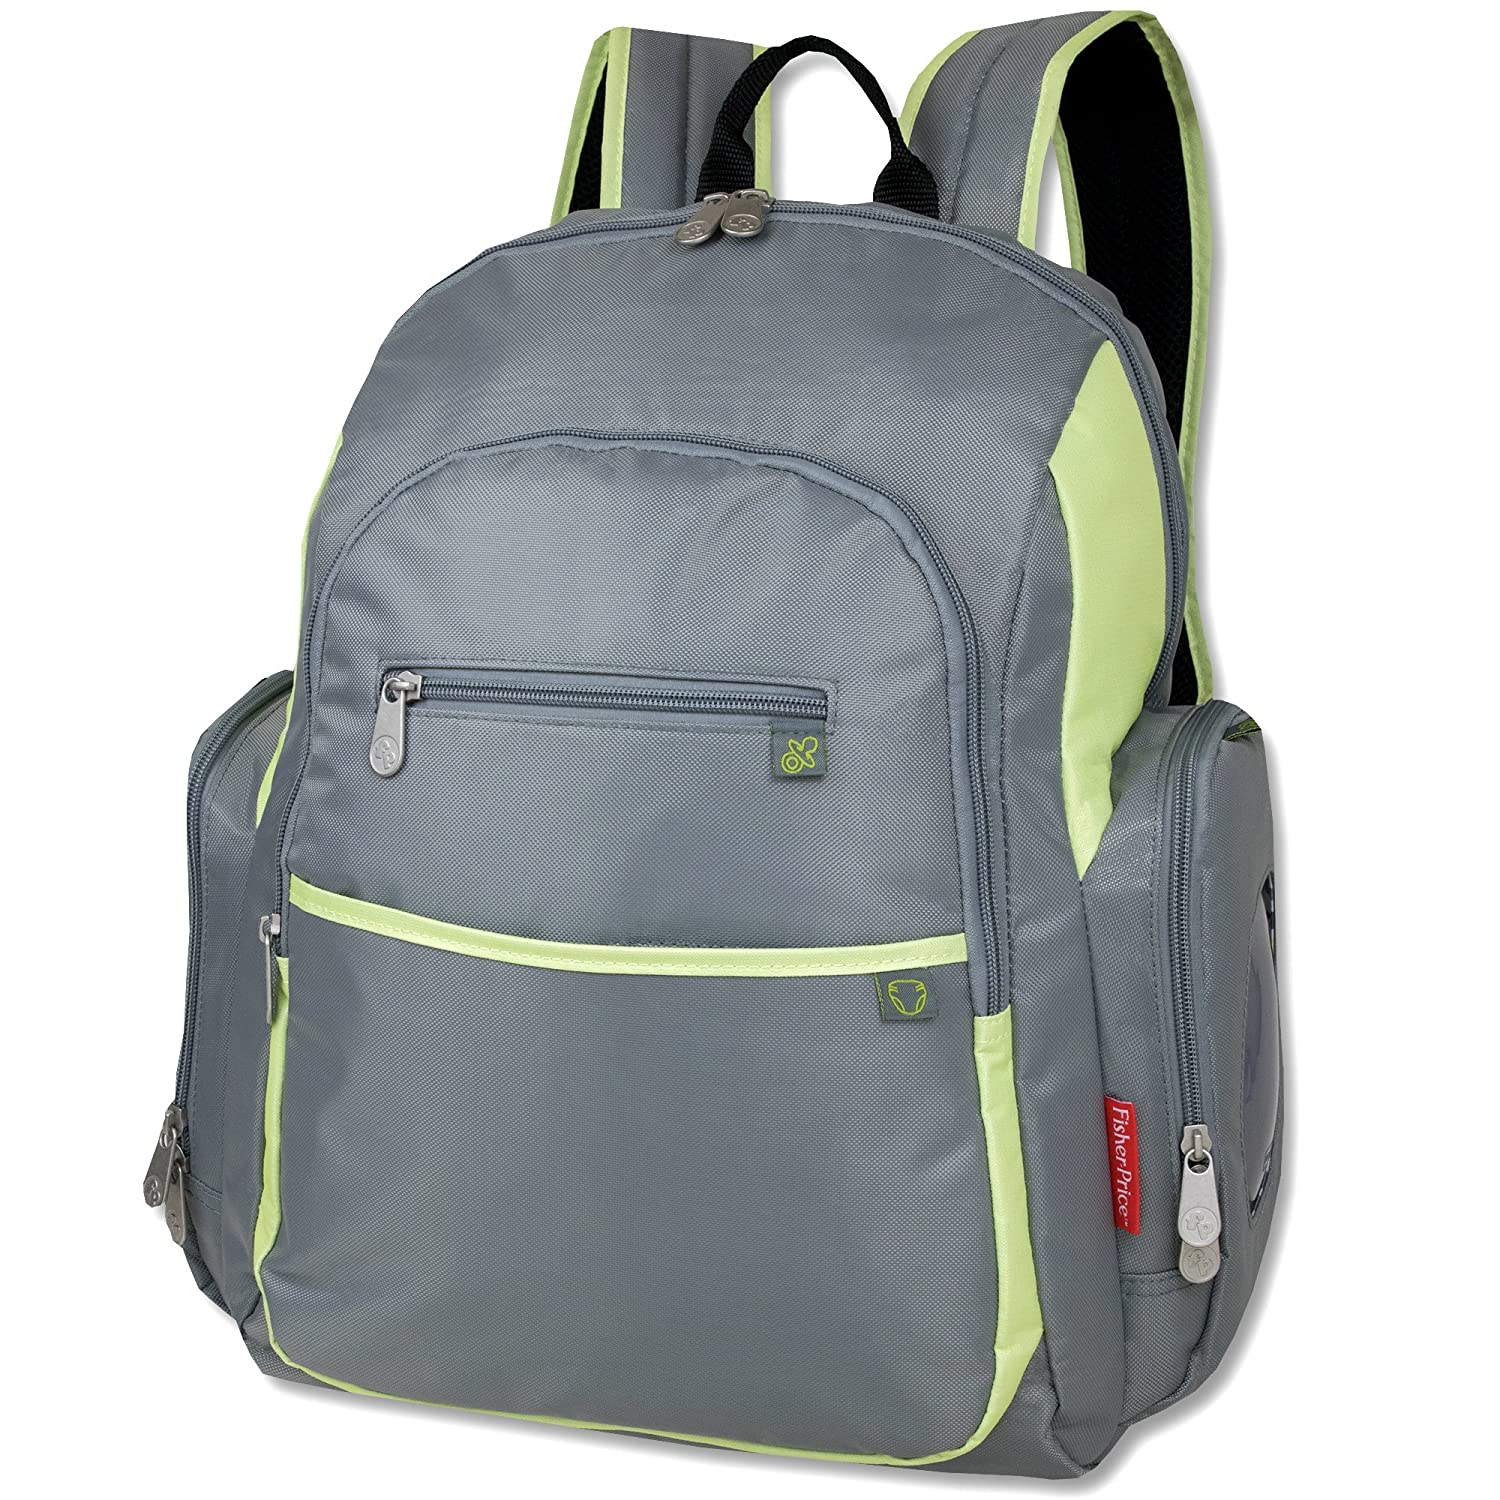 150b7aa200e8 Amazon.com   Fisher Price Backpack Diaper Bag - Fastfinder Colorblock in  Grey Orange   Baby